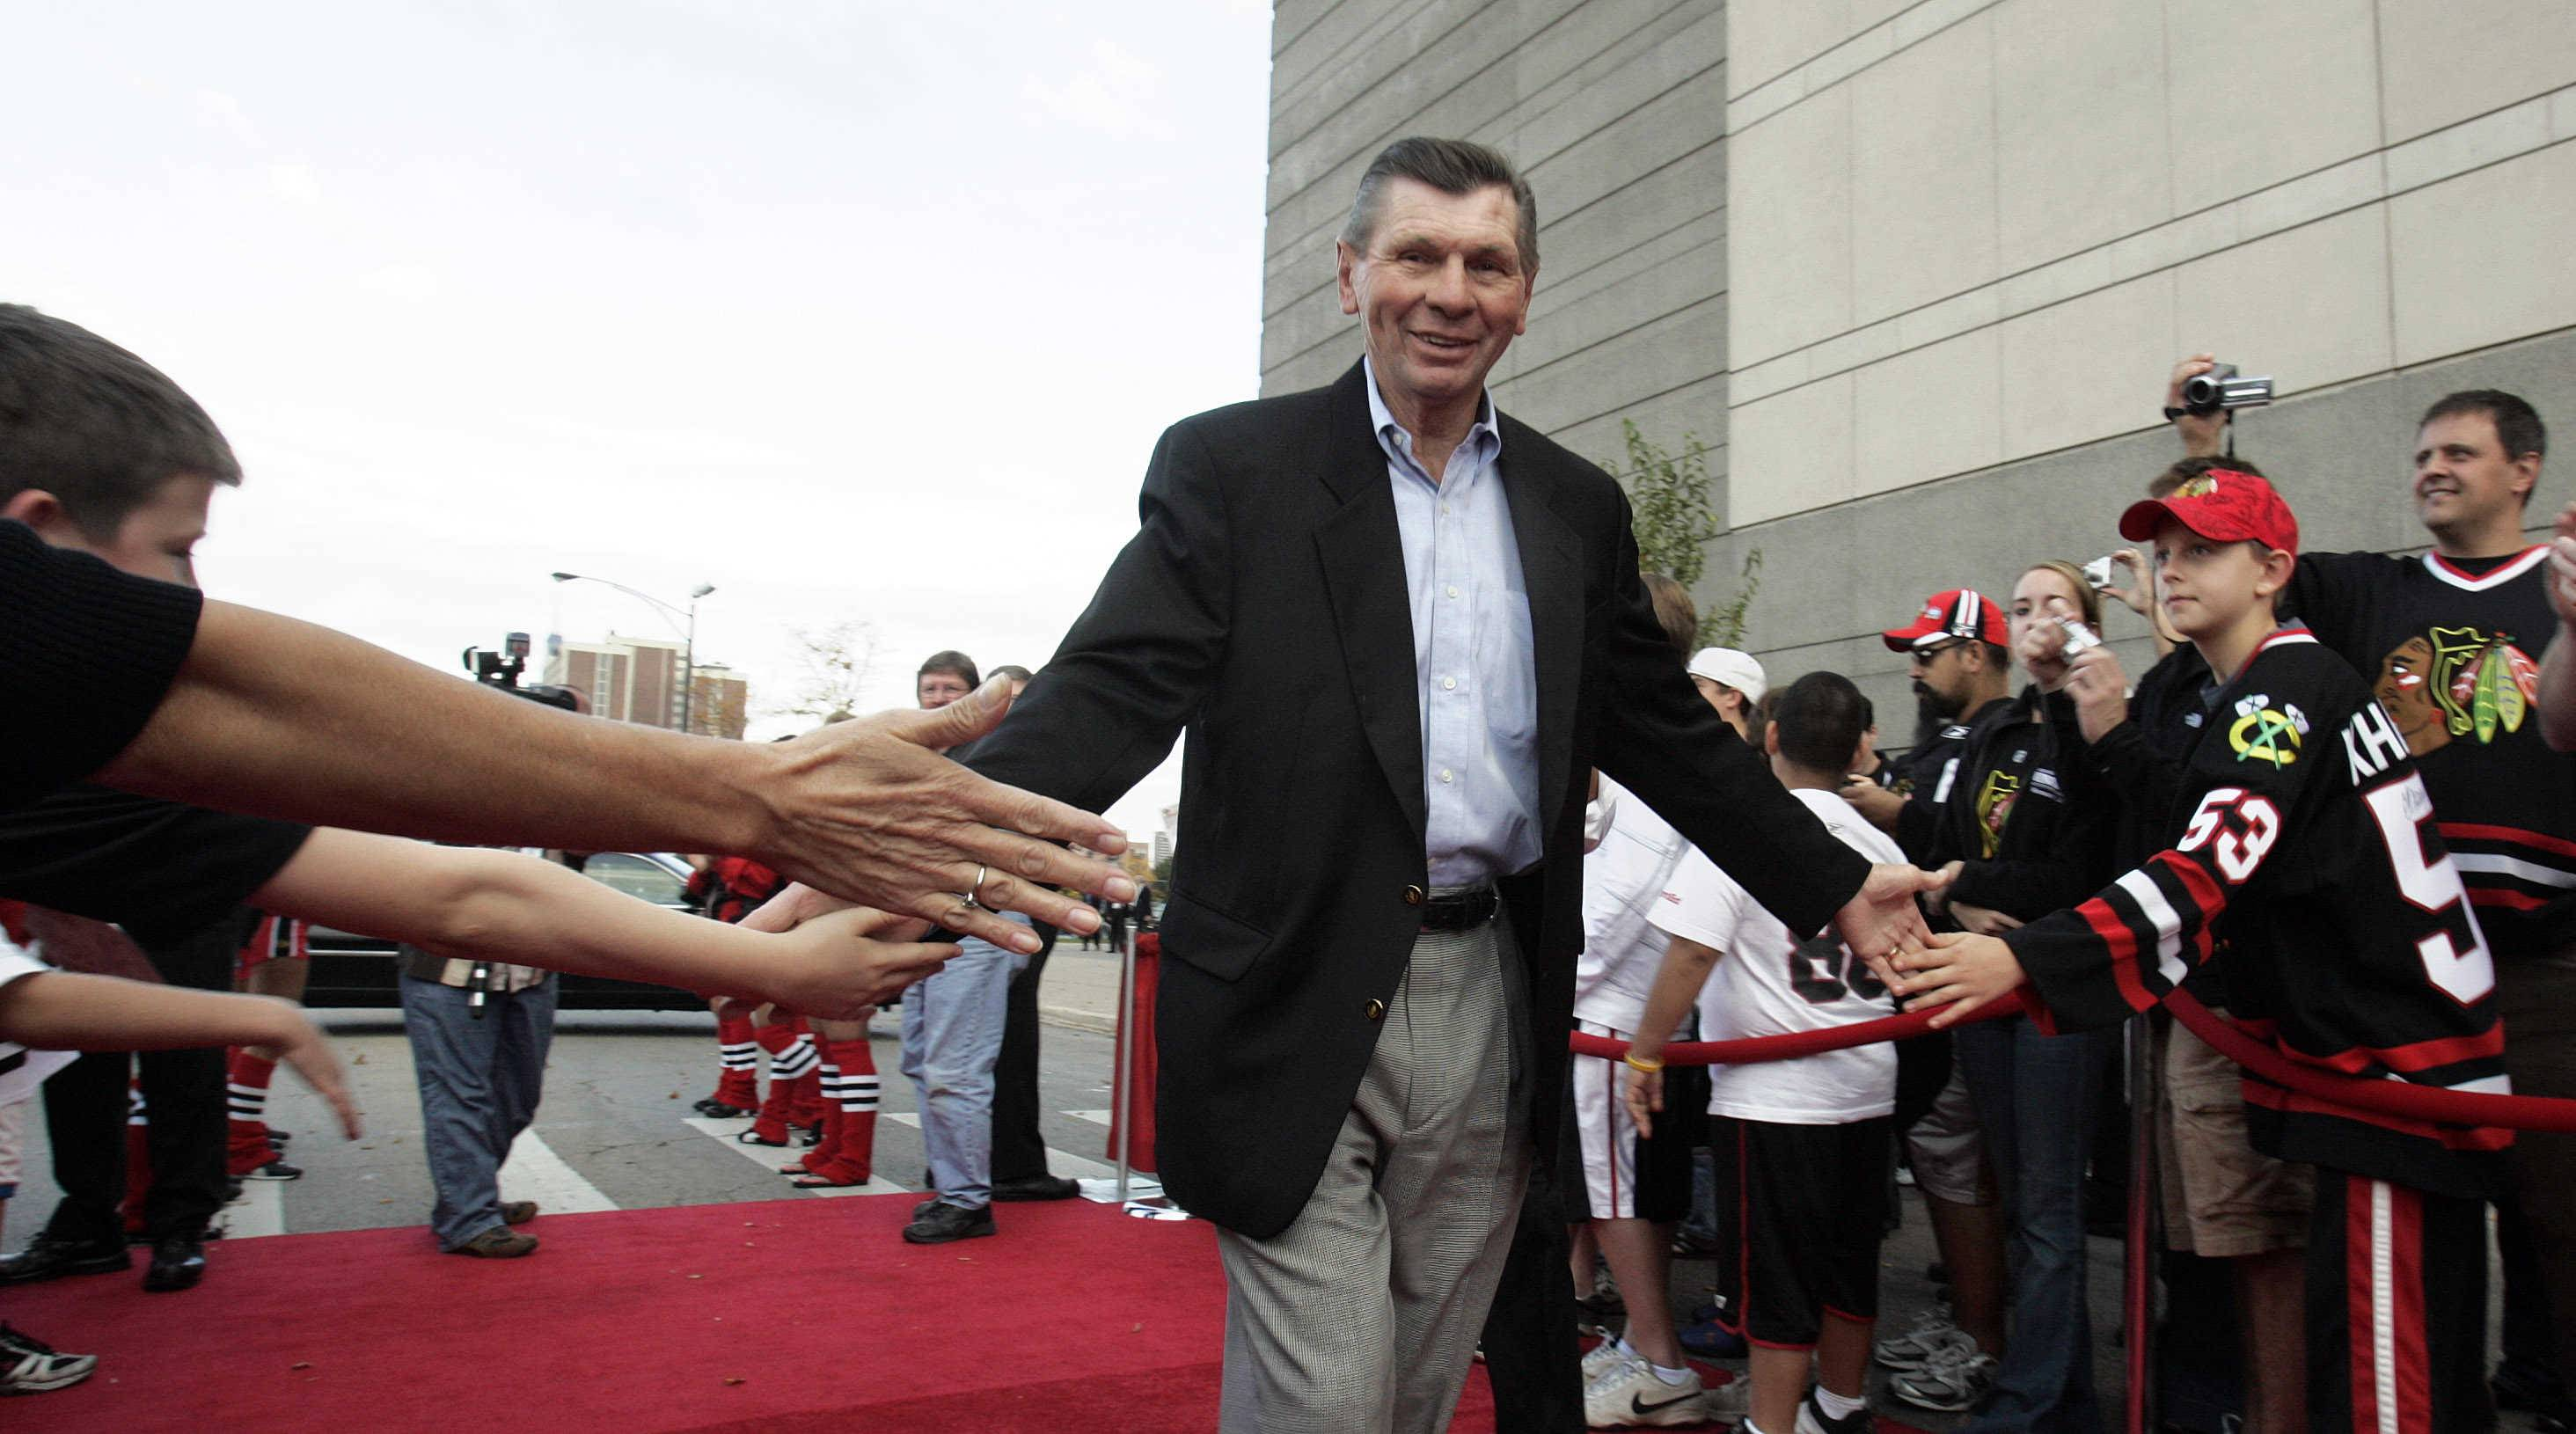 Former Chicago Blackhawk star Stan Mikita high fives fans as he comes down the red carpet during a ceremony prior to the 2008 home opener at the United Center.